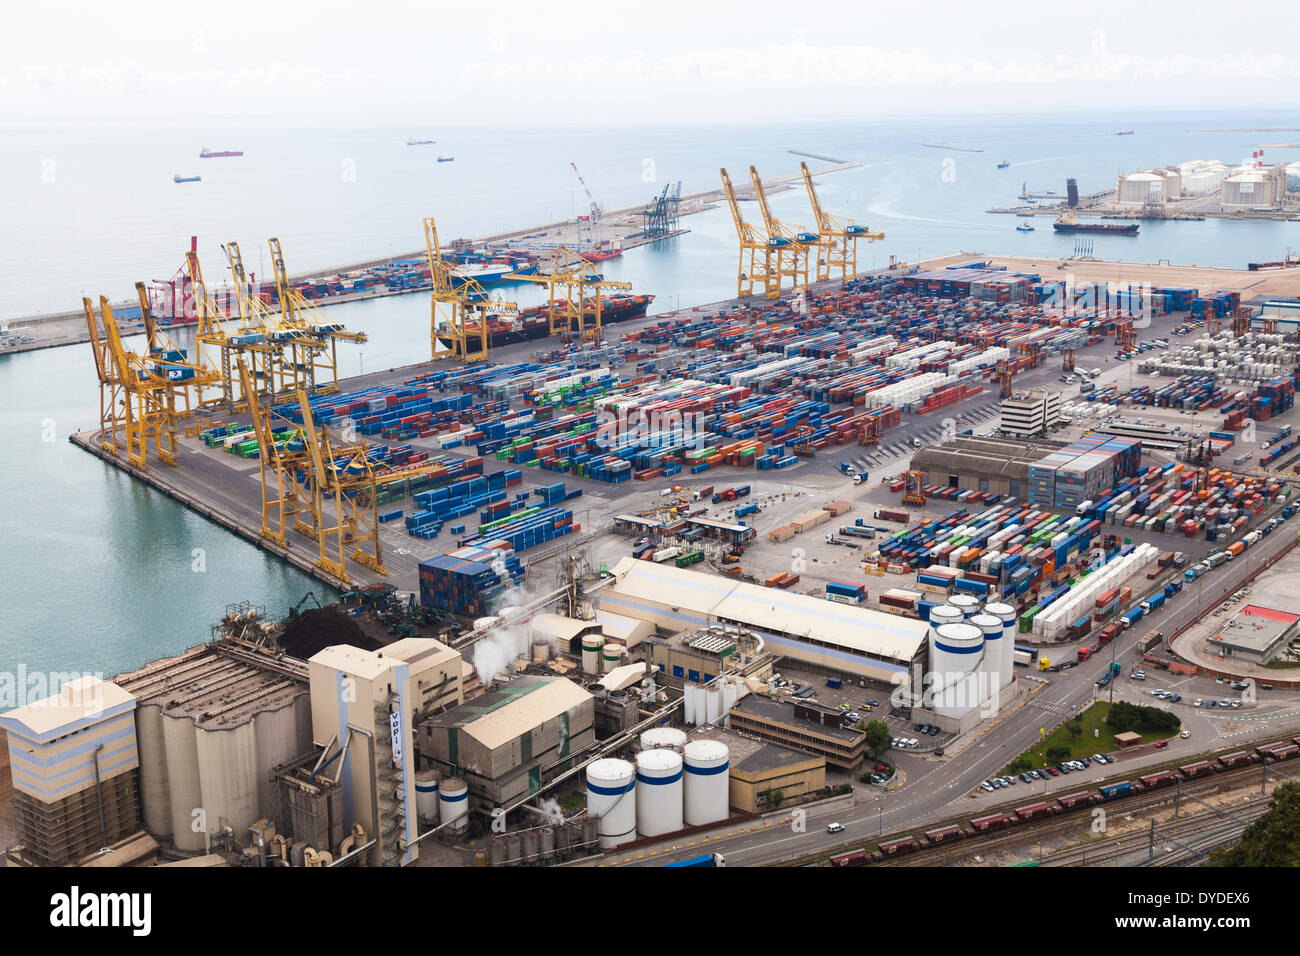 High view of Barcelona container port dockyard. - Stock Image